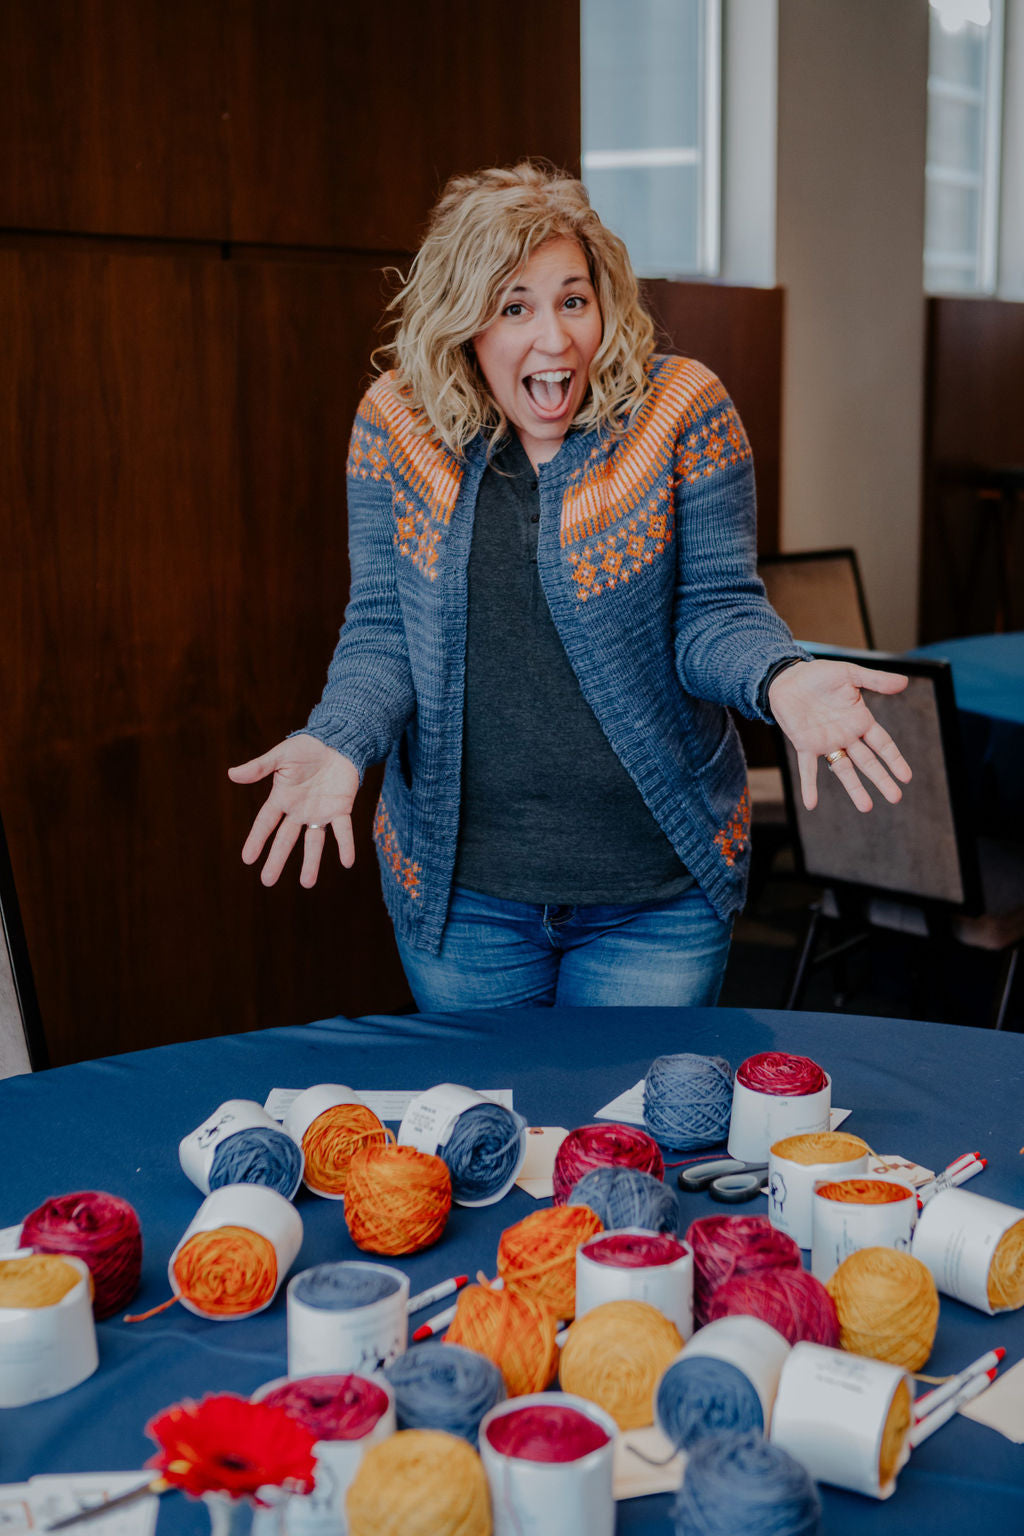 Jill smiles excitedly at the camera, outstretching her hands toward the viewer, as if to show them the yarn on the table before her.  The table is covered by a dark blue tablecloth and is covered in balls of yarn, ready to be knitted or crocheted.  The yarns are Yellow, Orange, Red, and Blue.  Jill wears jeans and a dark top, with a hand knitted sweater on top.  The sweater is blue with orange and pink color work on the yoke.